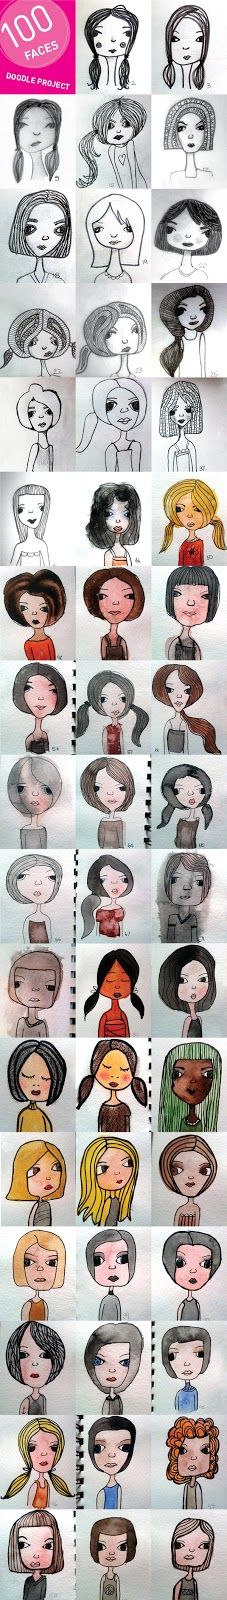 weelife: My 100 Faces Doodle Project